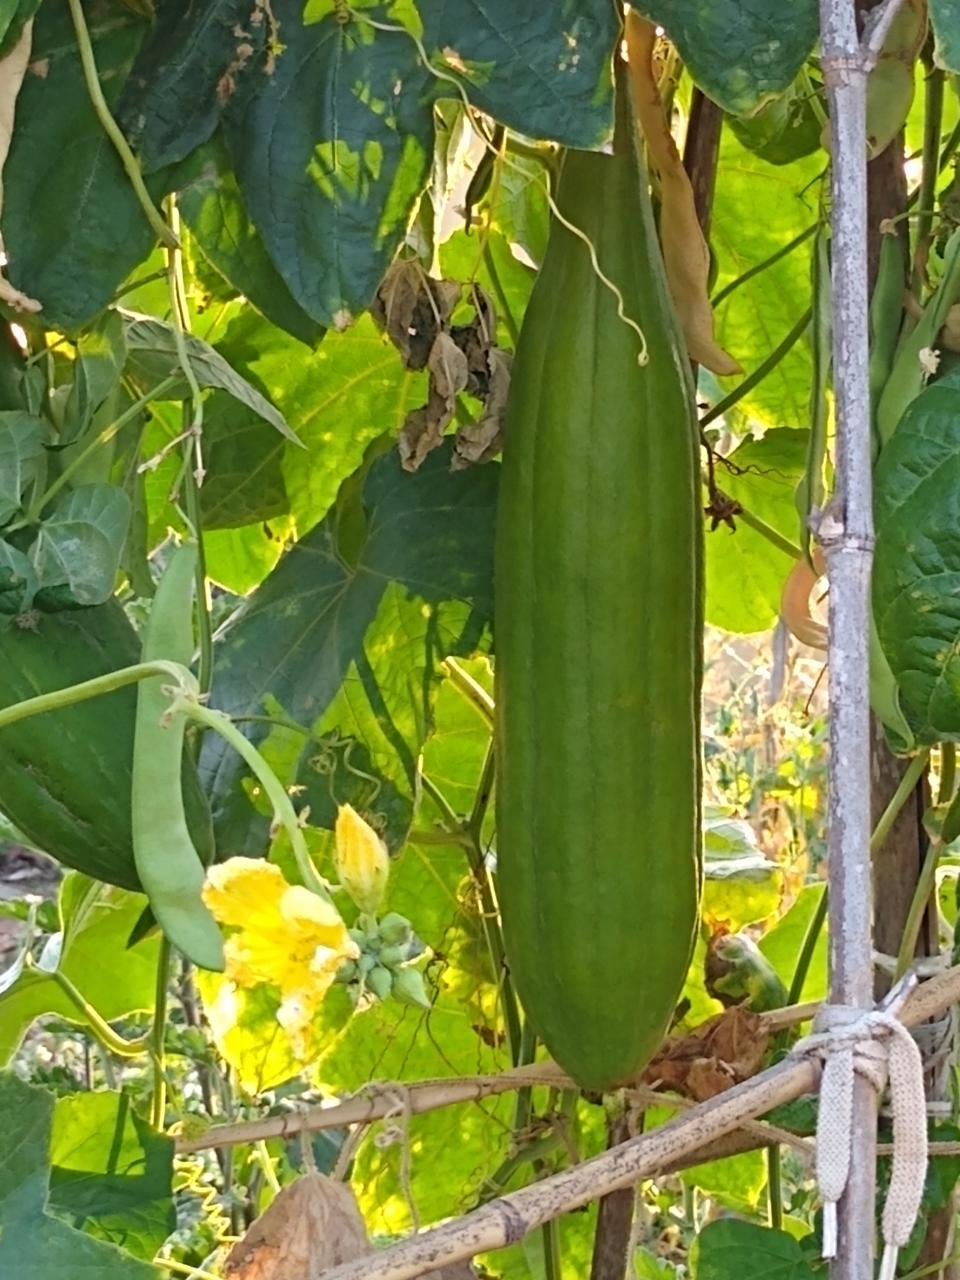 Luffa's did well this year